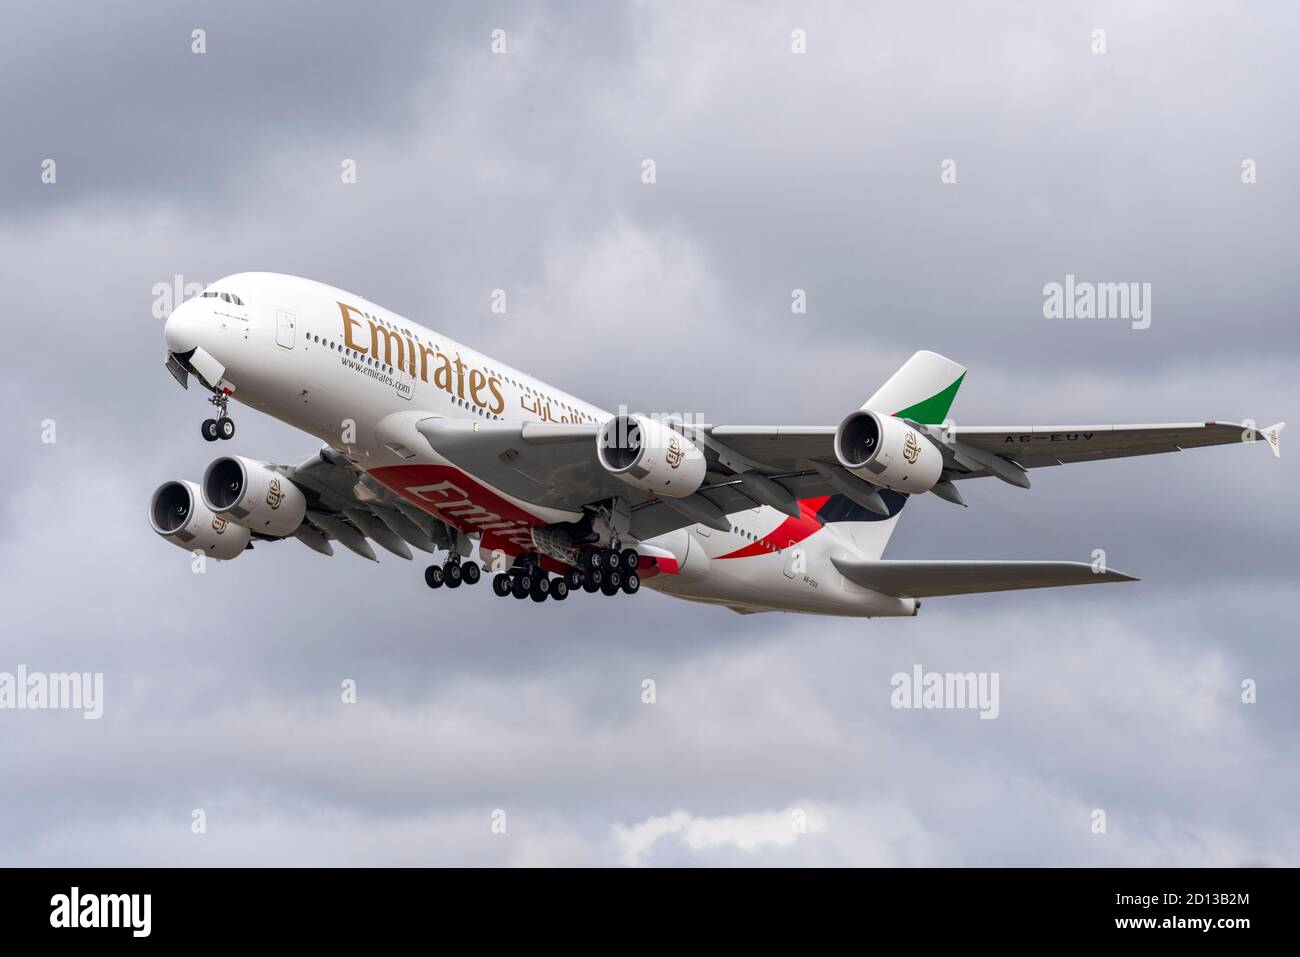 emirates-airbus-a380-jet-airliner-plane-a6-euv-taking-off-in-bad-weather-from-london-heathrow-airport-uk-super-jumbo-against-cloudscape-2D13B2M.jpg